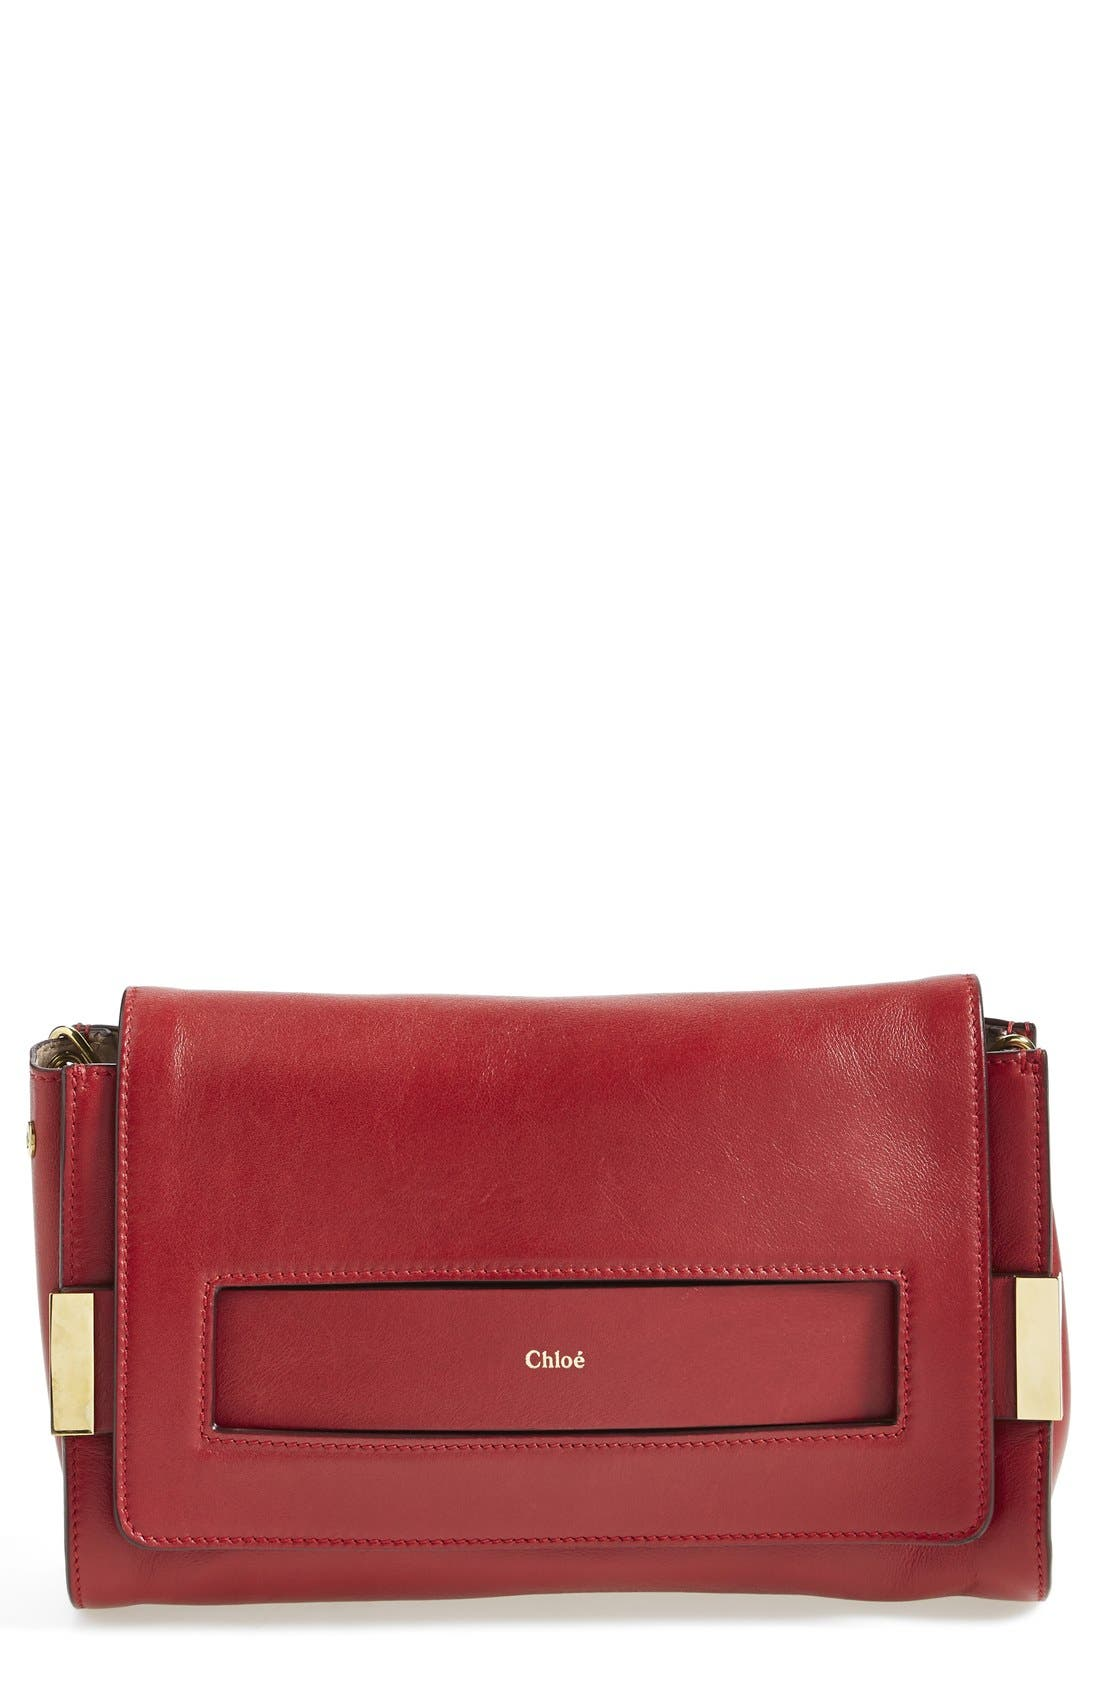 Alternate Image 1 Selected - Chloé 'Elle - Medium' Clutch